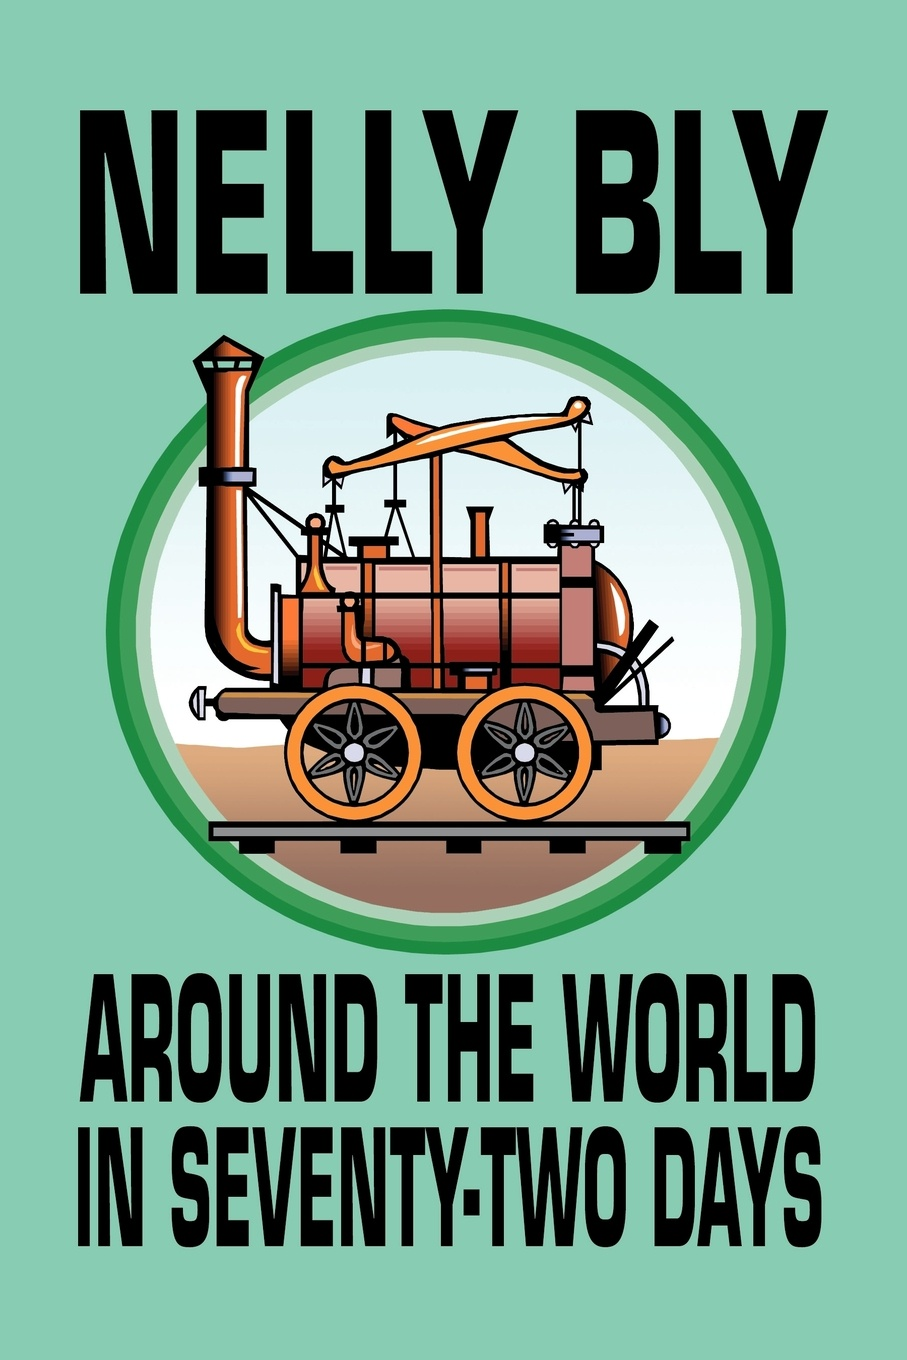 Nelly Bly Around the World in Seventy-Two Days